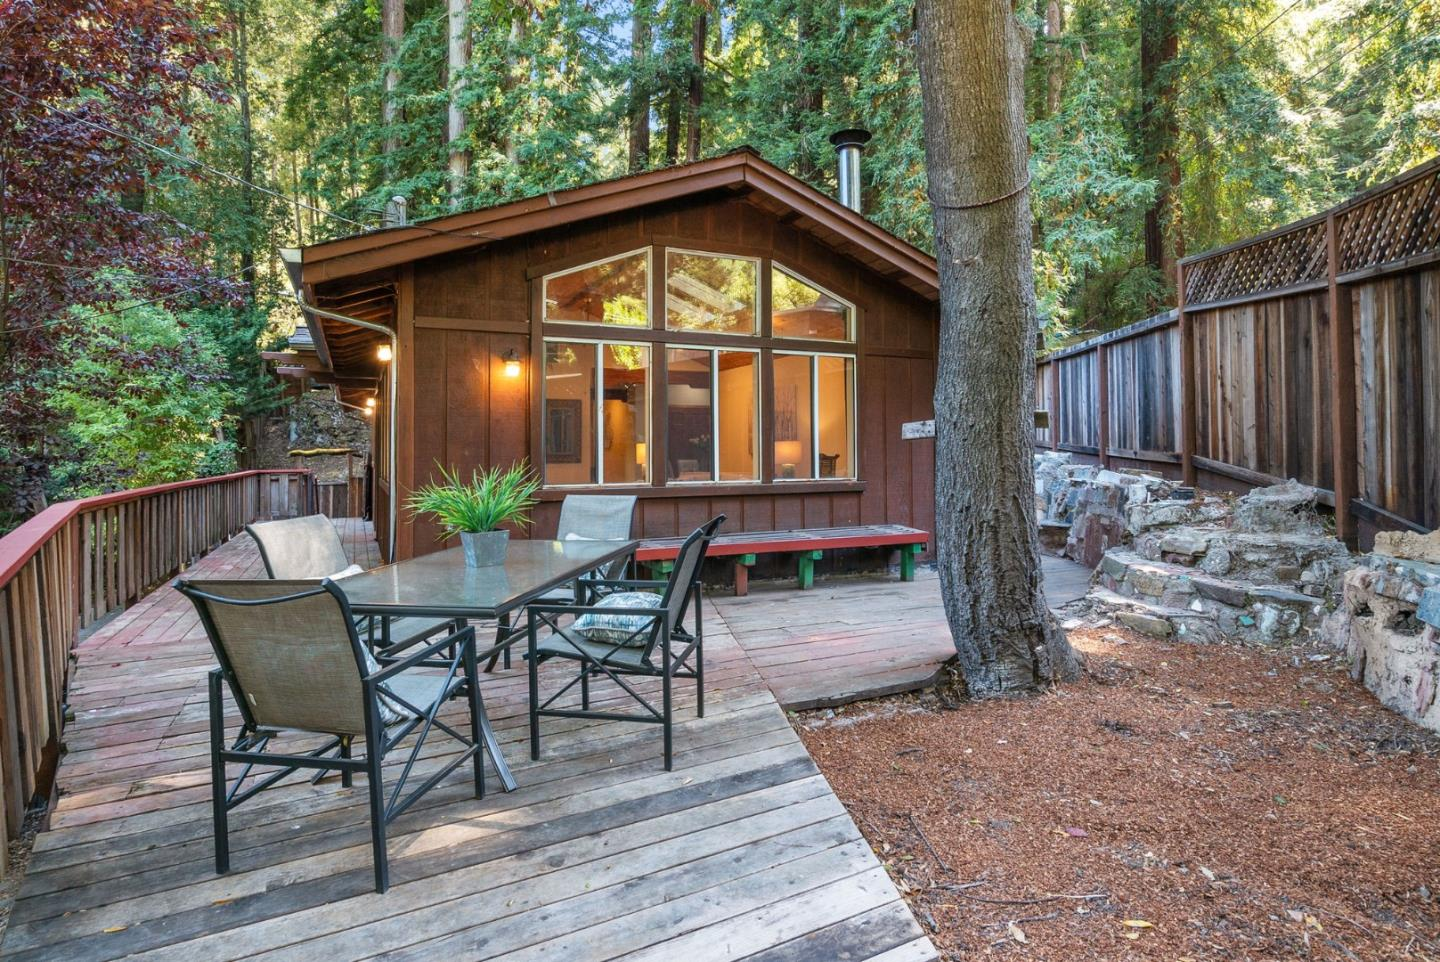 Built into a Felton hillside & ringed by maples, pines, & redwoods, this cozy home feels like a modern treehouse. The living room has a wood stove & a wall of custom windows leading up to an angled pine plank ceiling w/a ceiling fan, skylights, & recessed lights. Wood floors lead to a kitchen/dining area, w/wood cabinets, a gas range, double sink, recessed lights, & more views of the trees outside. The spacious master bedroom has a modern feel & repeats the living room features. A second bedroom or office also has hardwood floors, an angled ceiling, & recessed lights. Between the bedrooms is a bath w/a shower, wood cabinets, & recessed lights. A wooden deck wraps around the house, w/built-in benches & plenty of room for outdoor dining, entertaining, & relaxing. The trees provide both color & privacy, & a small shed offers extra storage space. Cozy & inviting, w/modern touches that add a feeling of space & light, this updated treehouse weaves modern upgrades into a forested retreat.